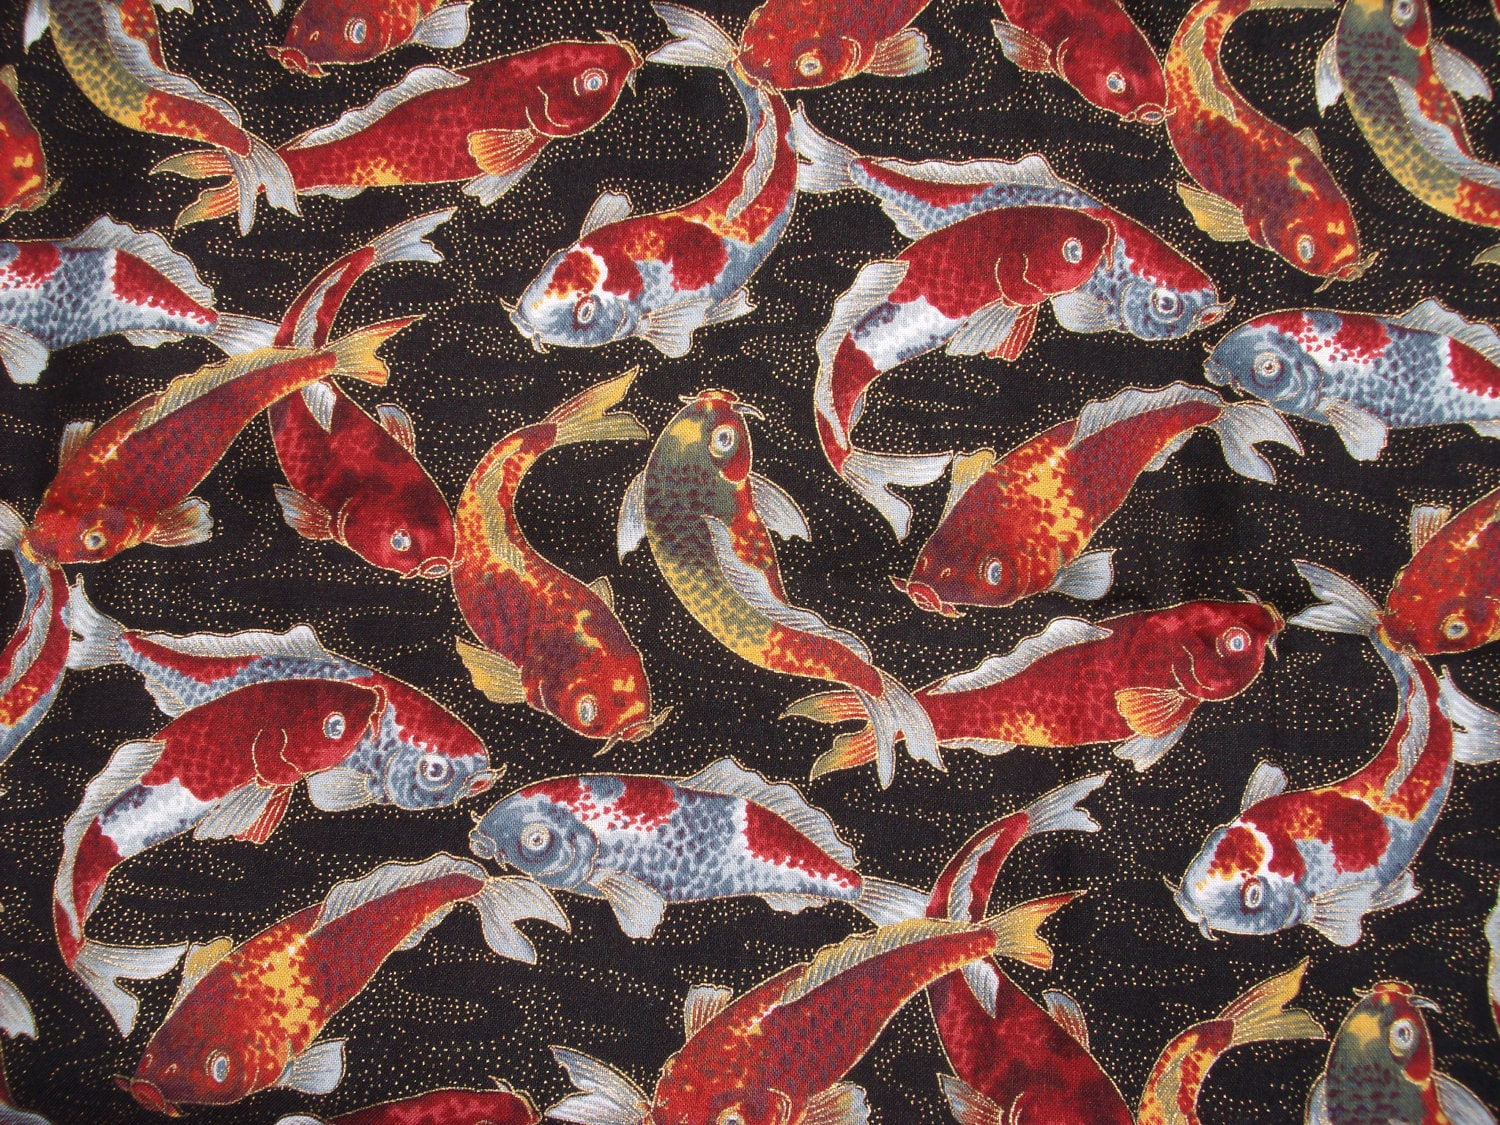 asian style koi fish cotton fabric yards gold metallic